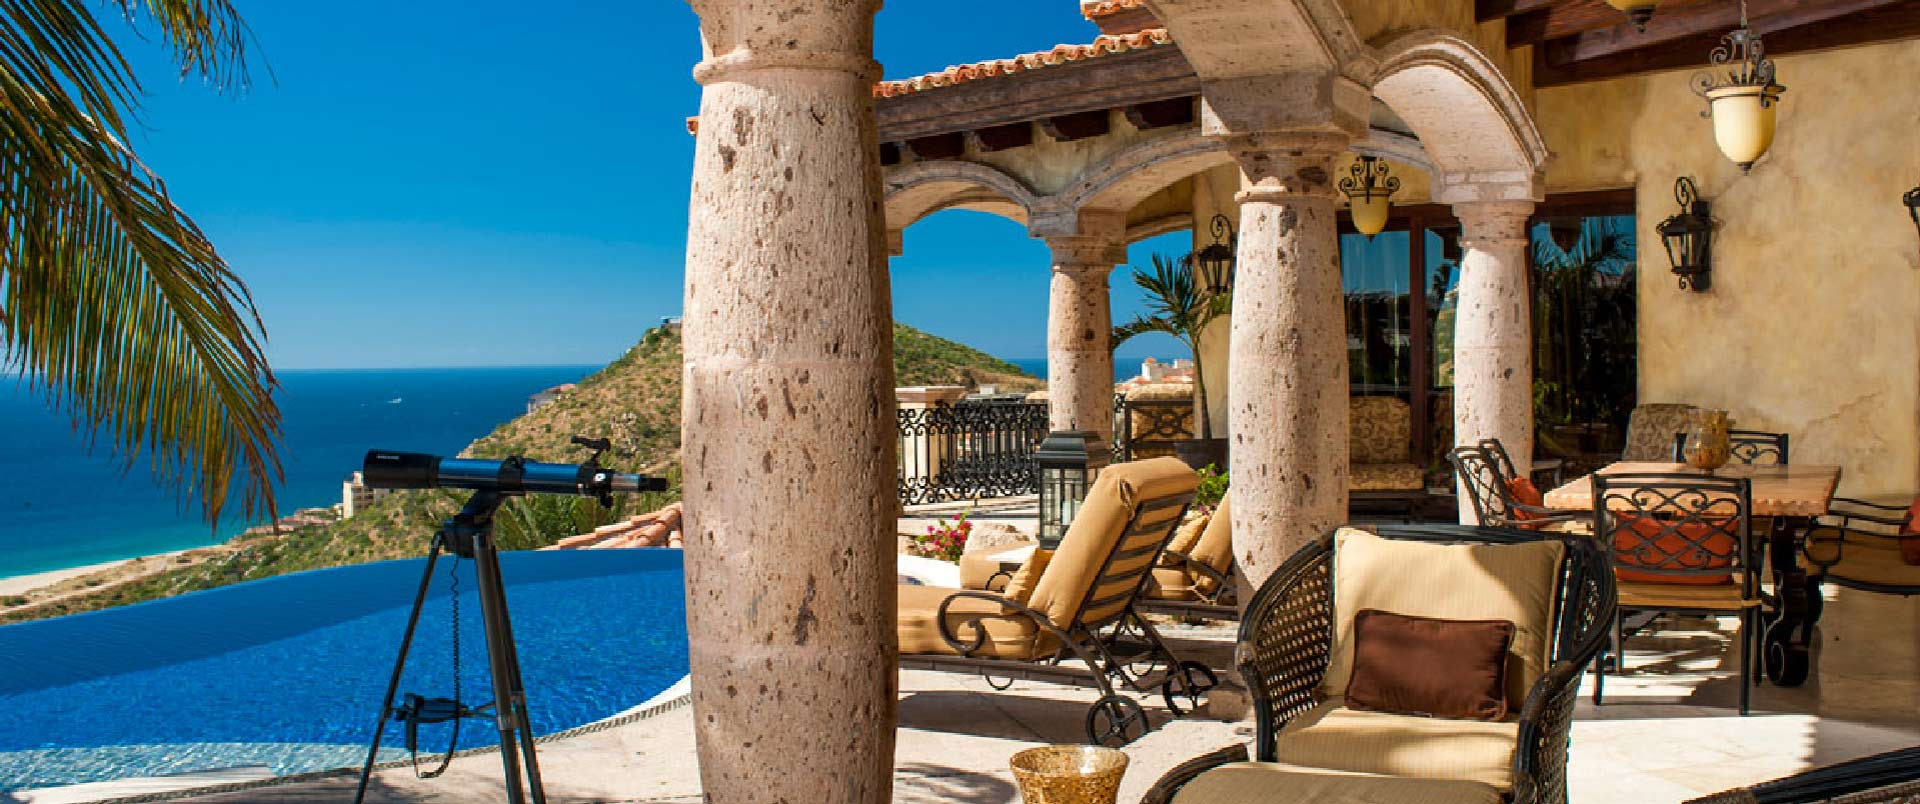 cabo san lucas luxury villas